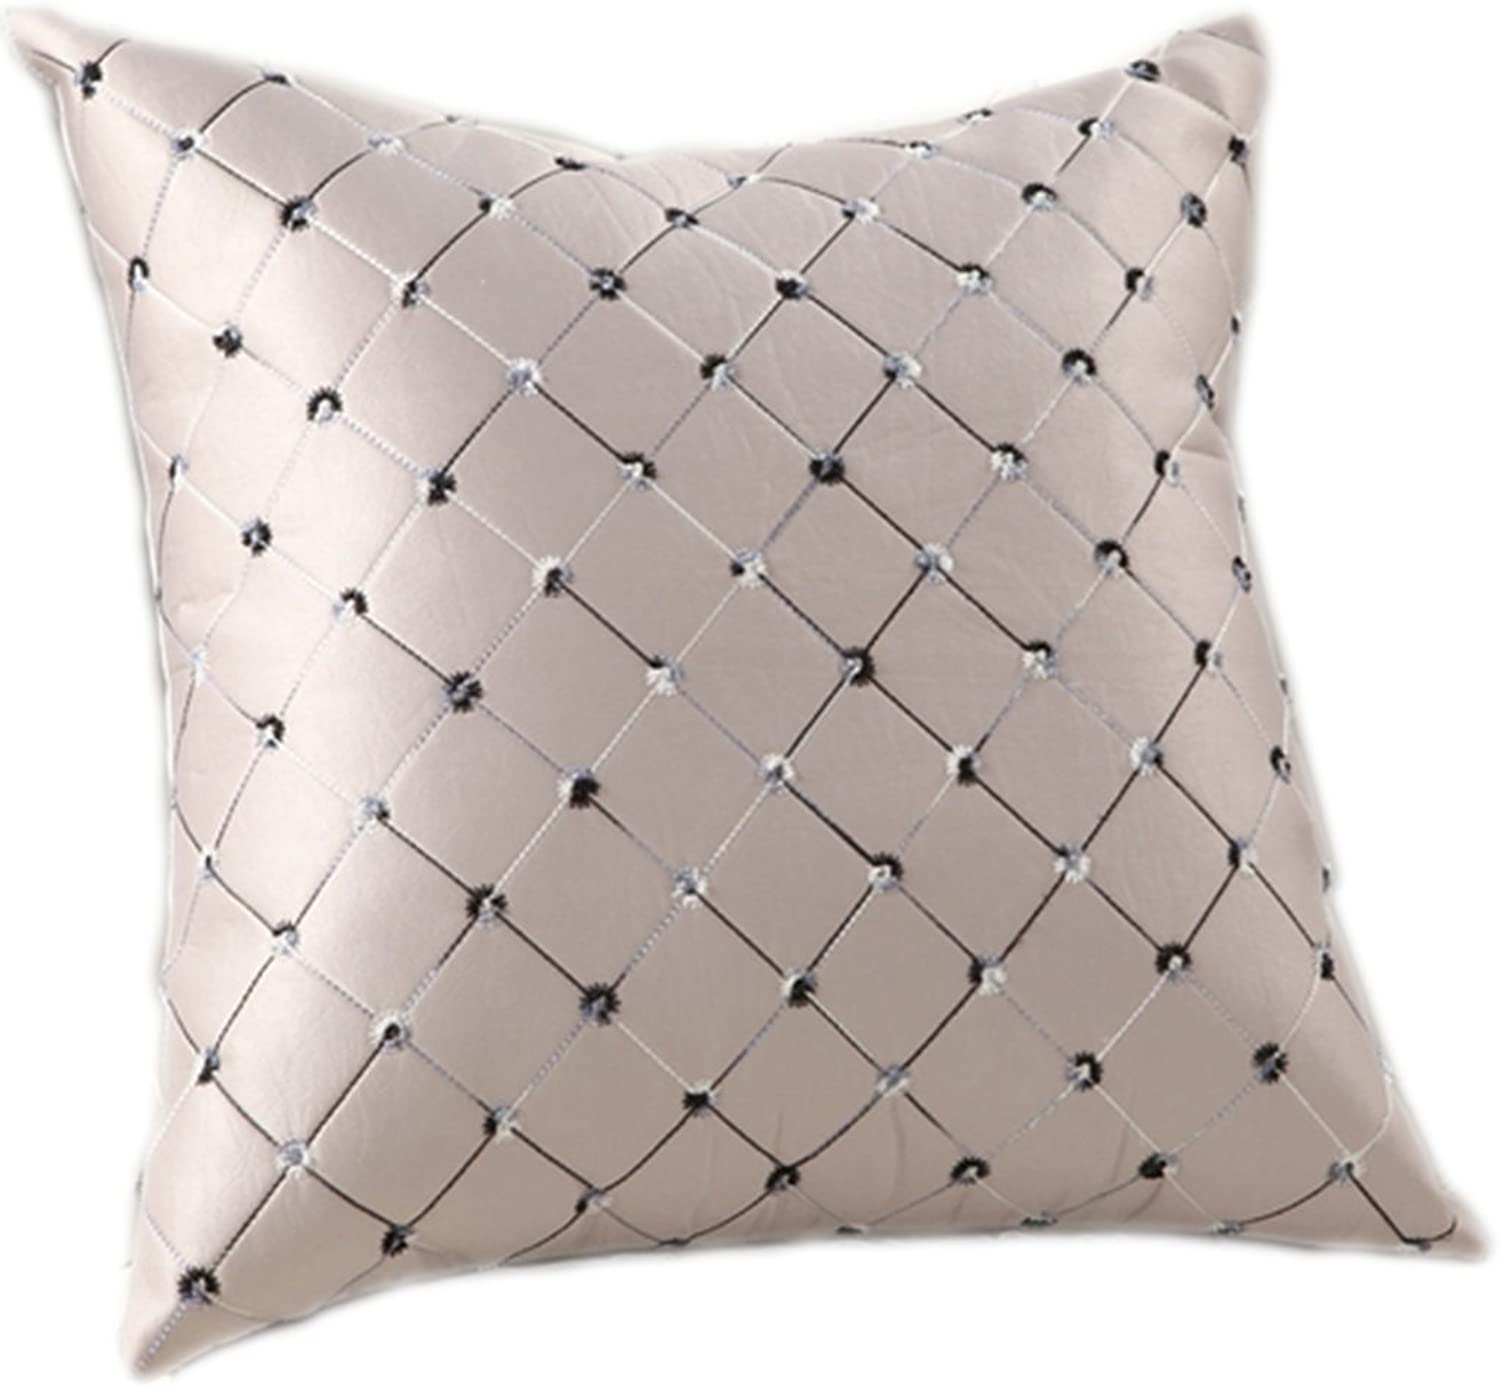 Home Cloth Embroidered Lattice Cushions Backrest Office Waist Pillow (color   6 , Size   5555cm)